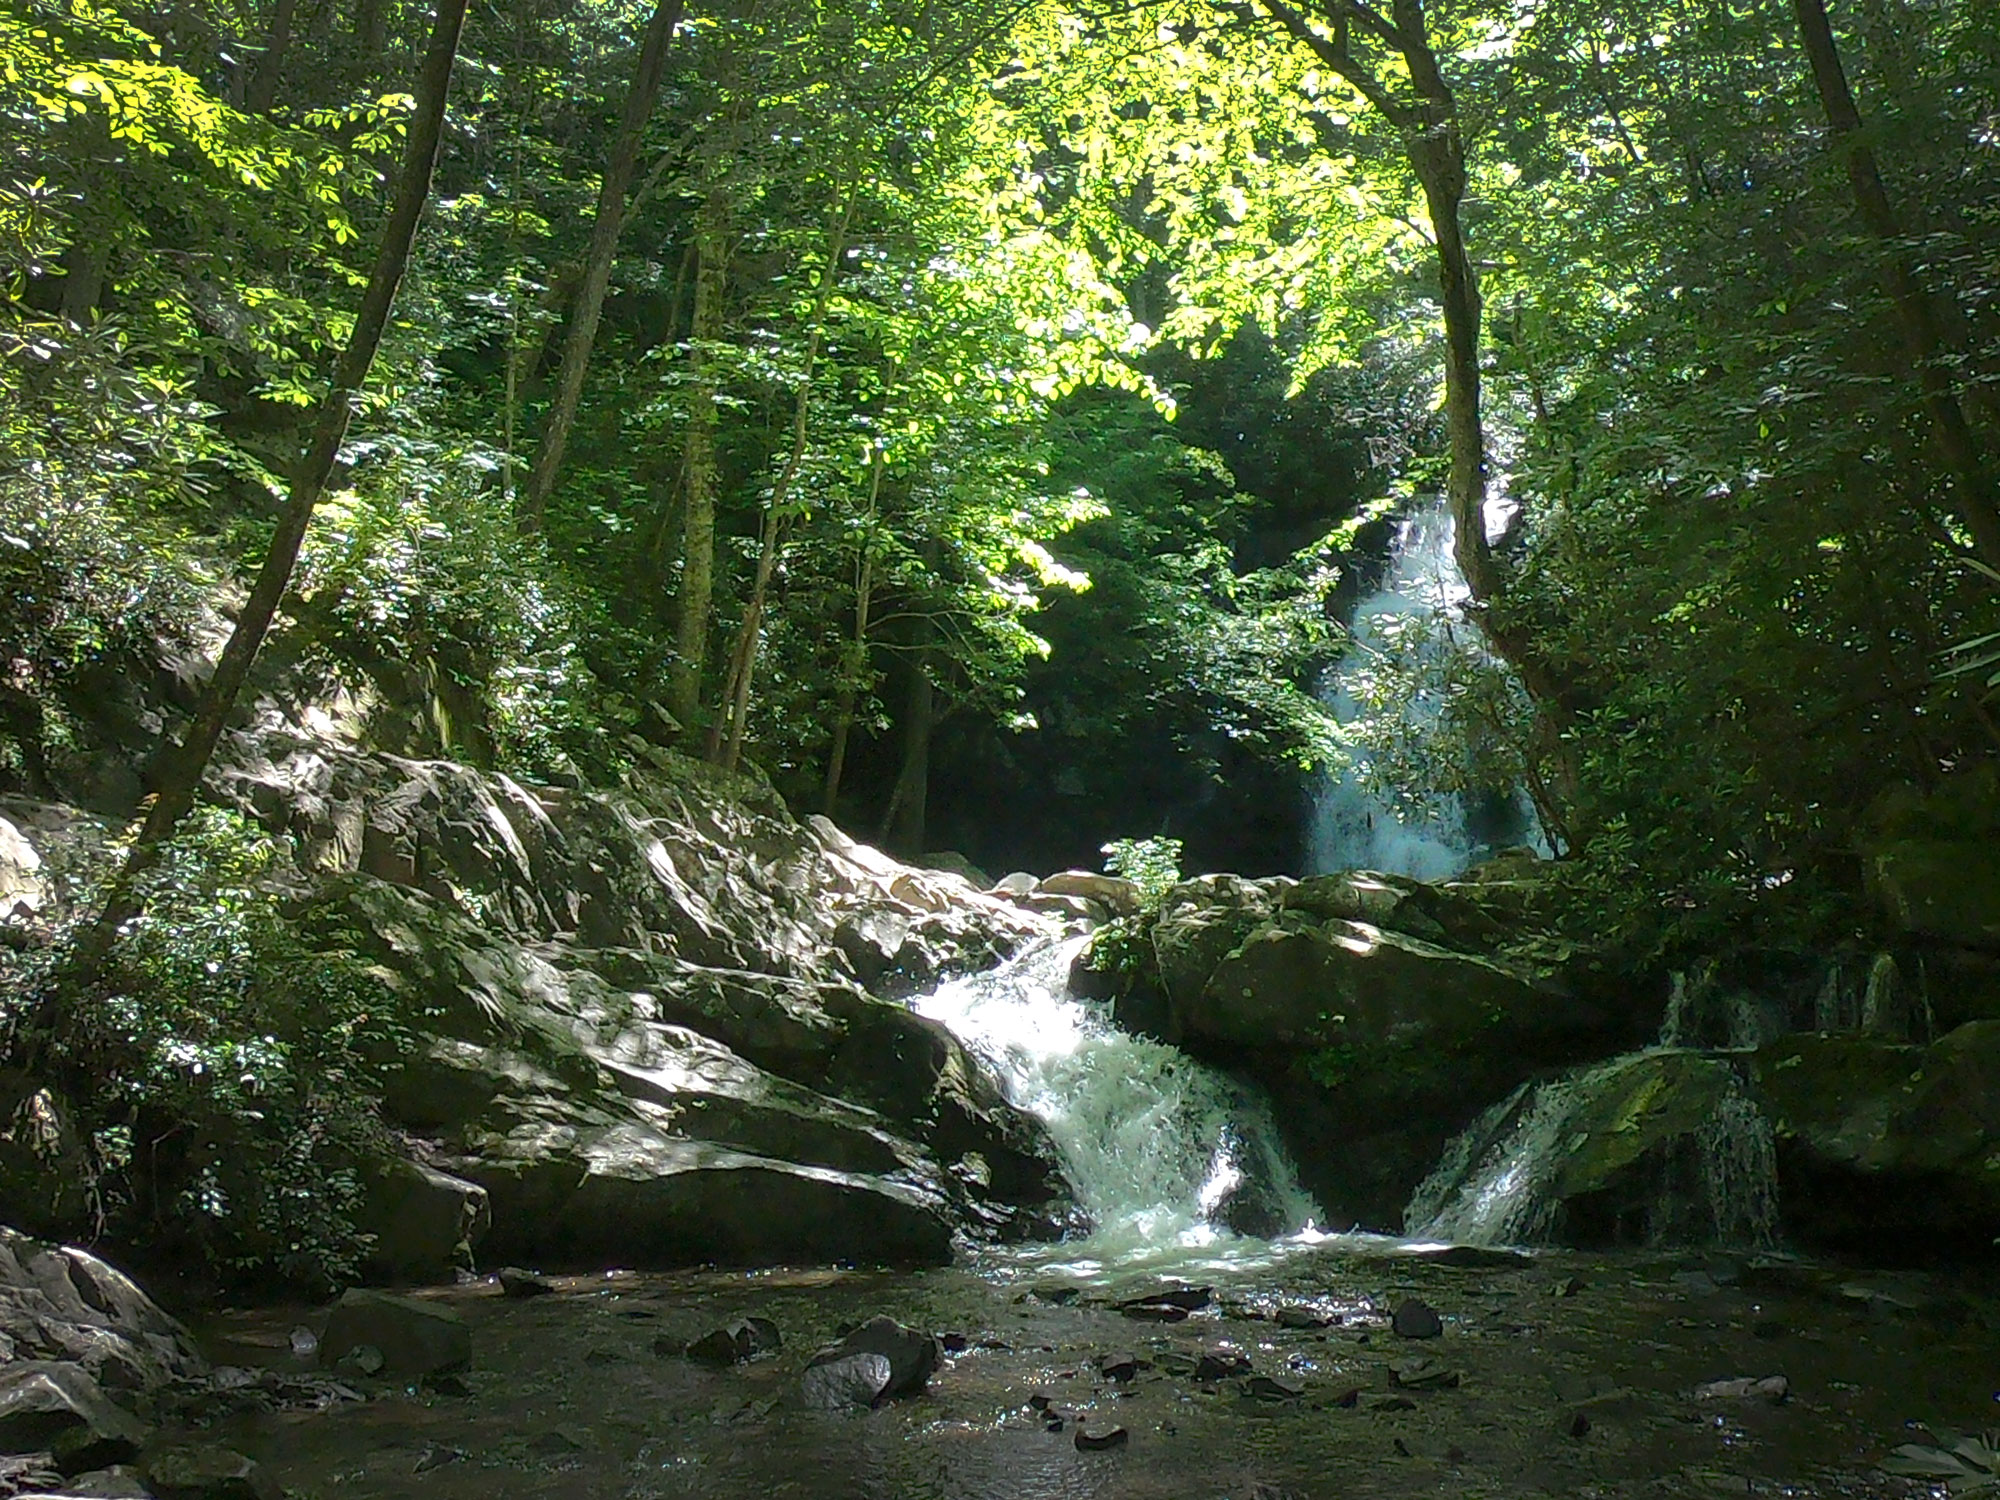 Spruce Flat Falls waterfall in Tremont, Great Smoky Mountains National Park, Tennessee